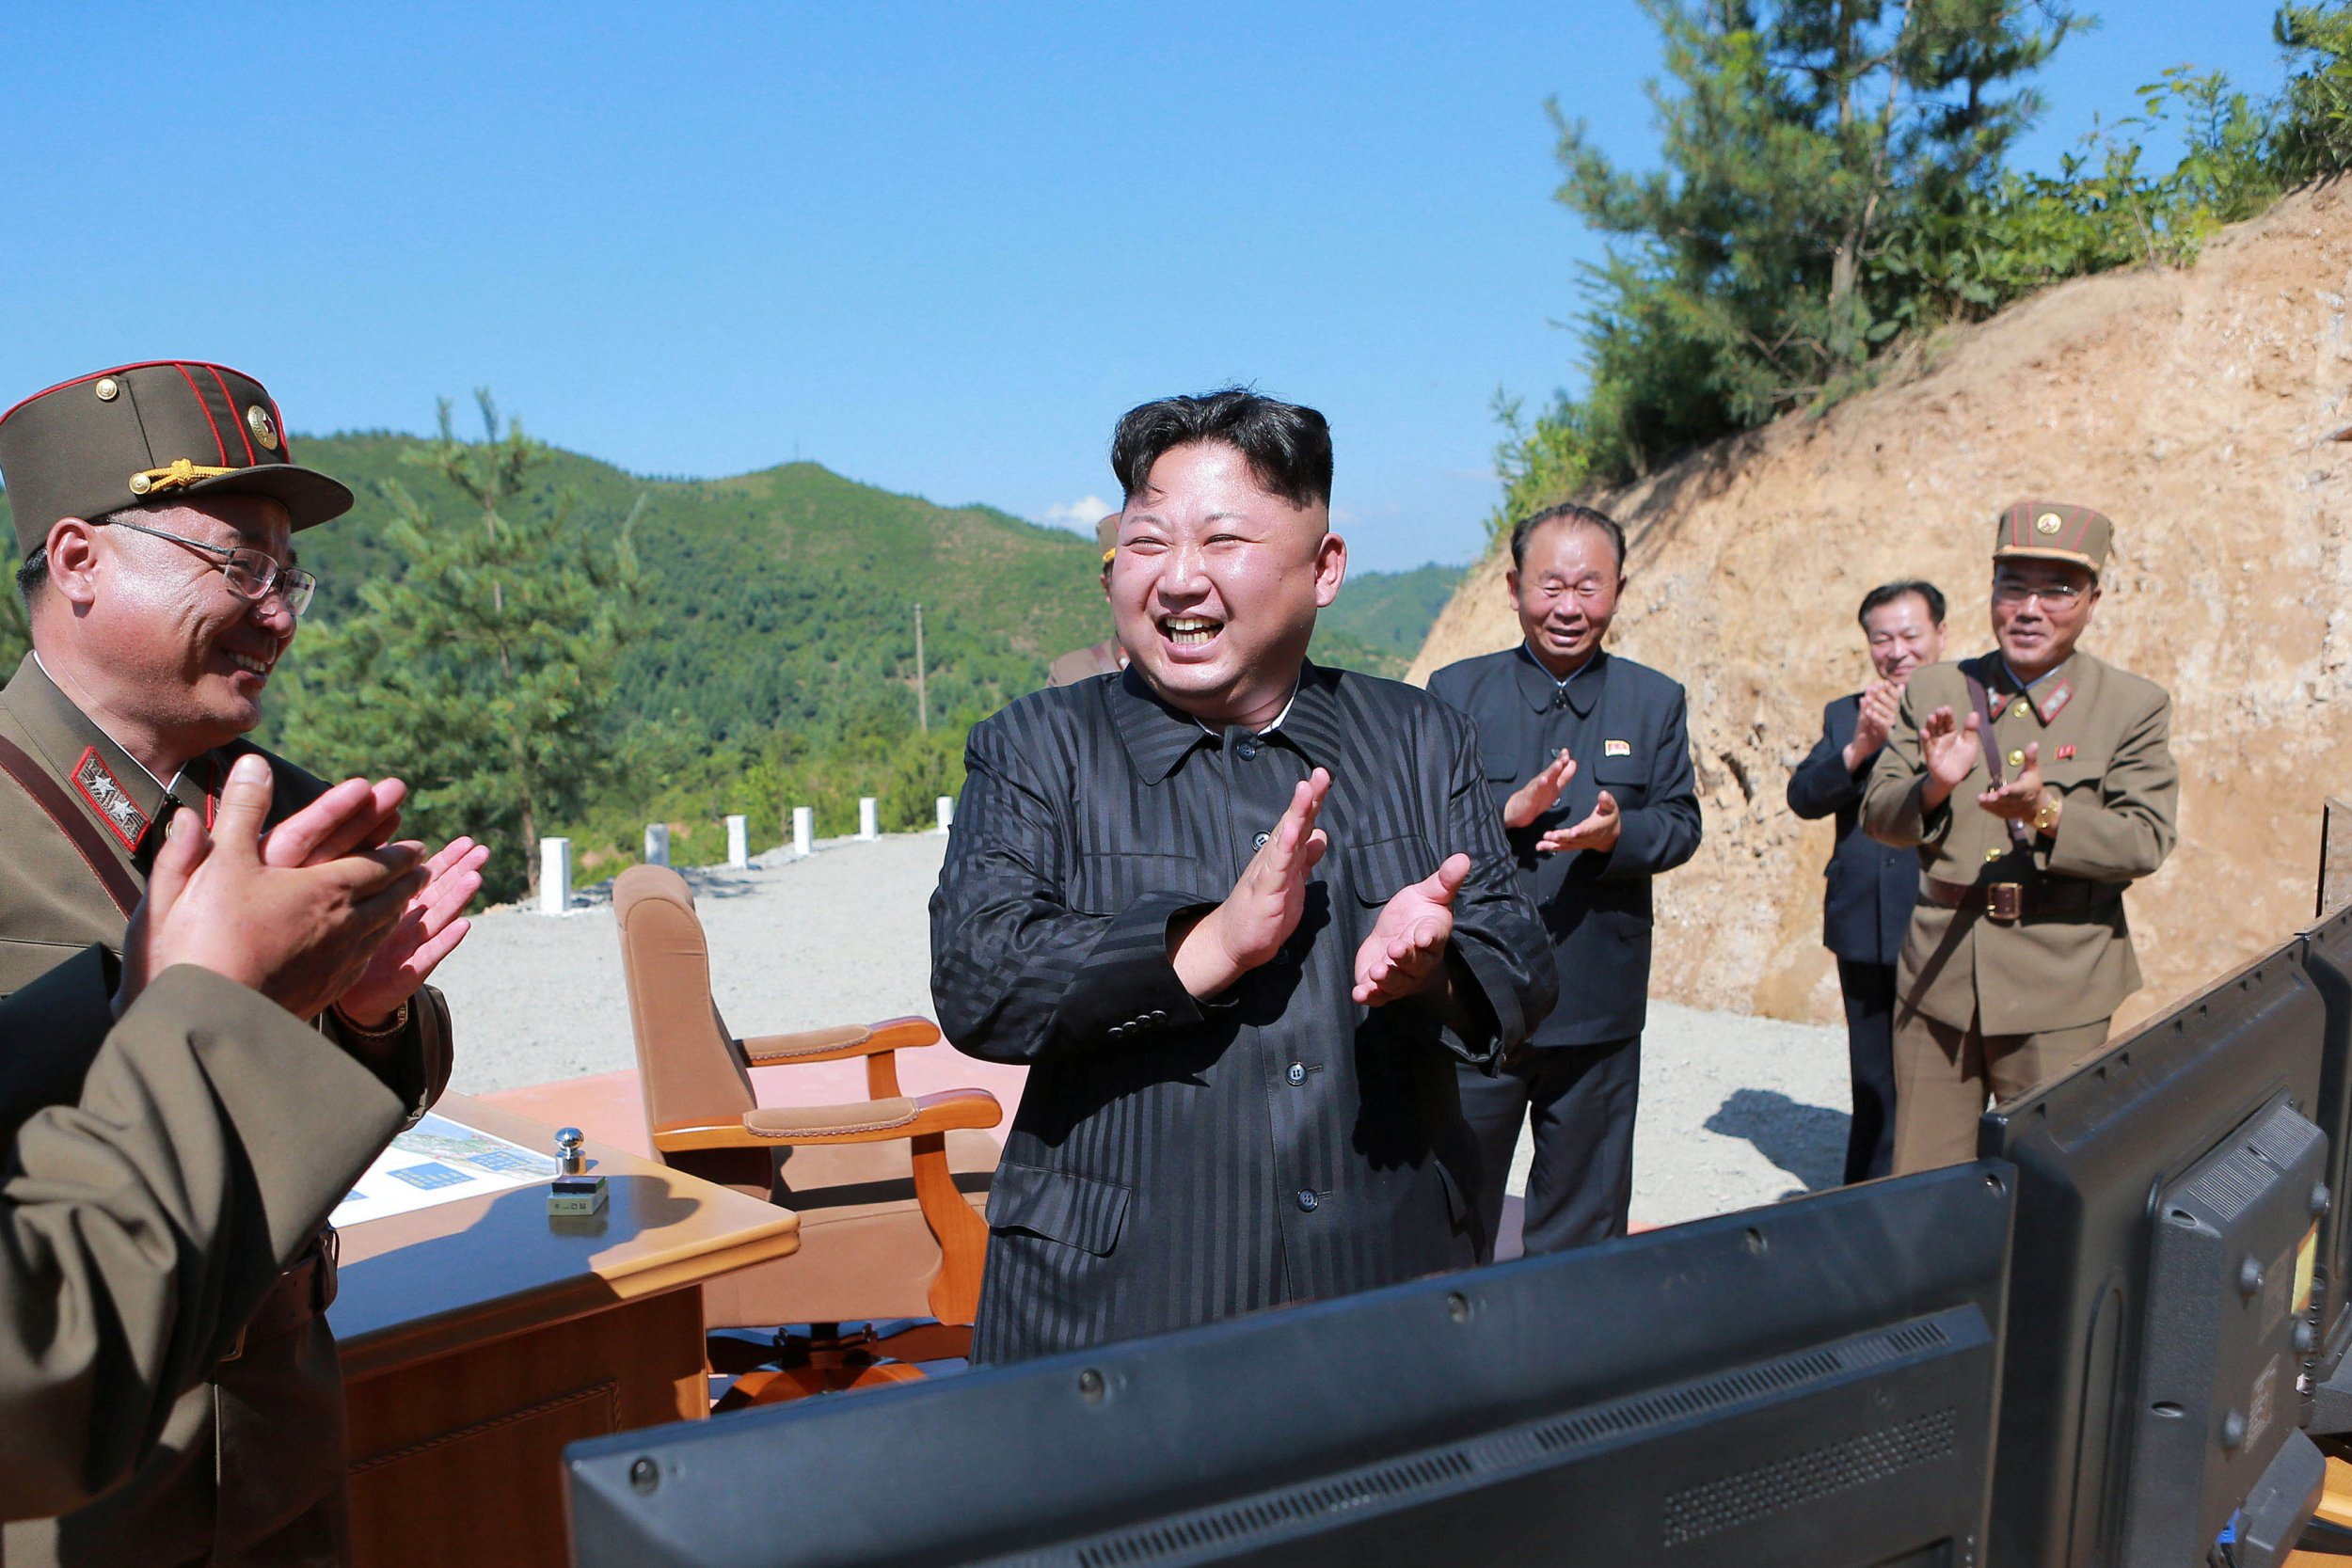 Sanctions against North Korea consistently fail. Why? | Opinion